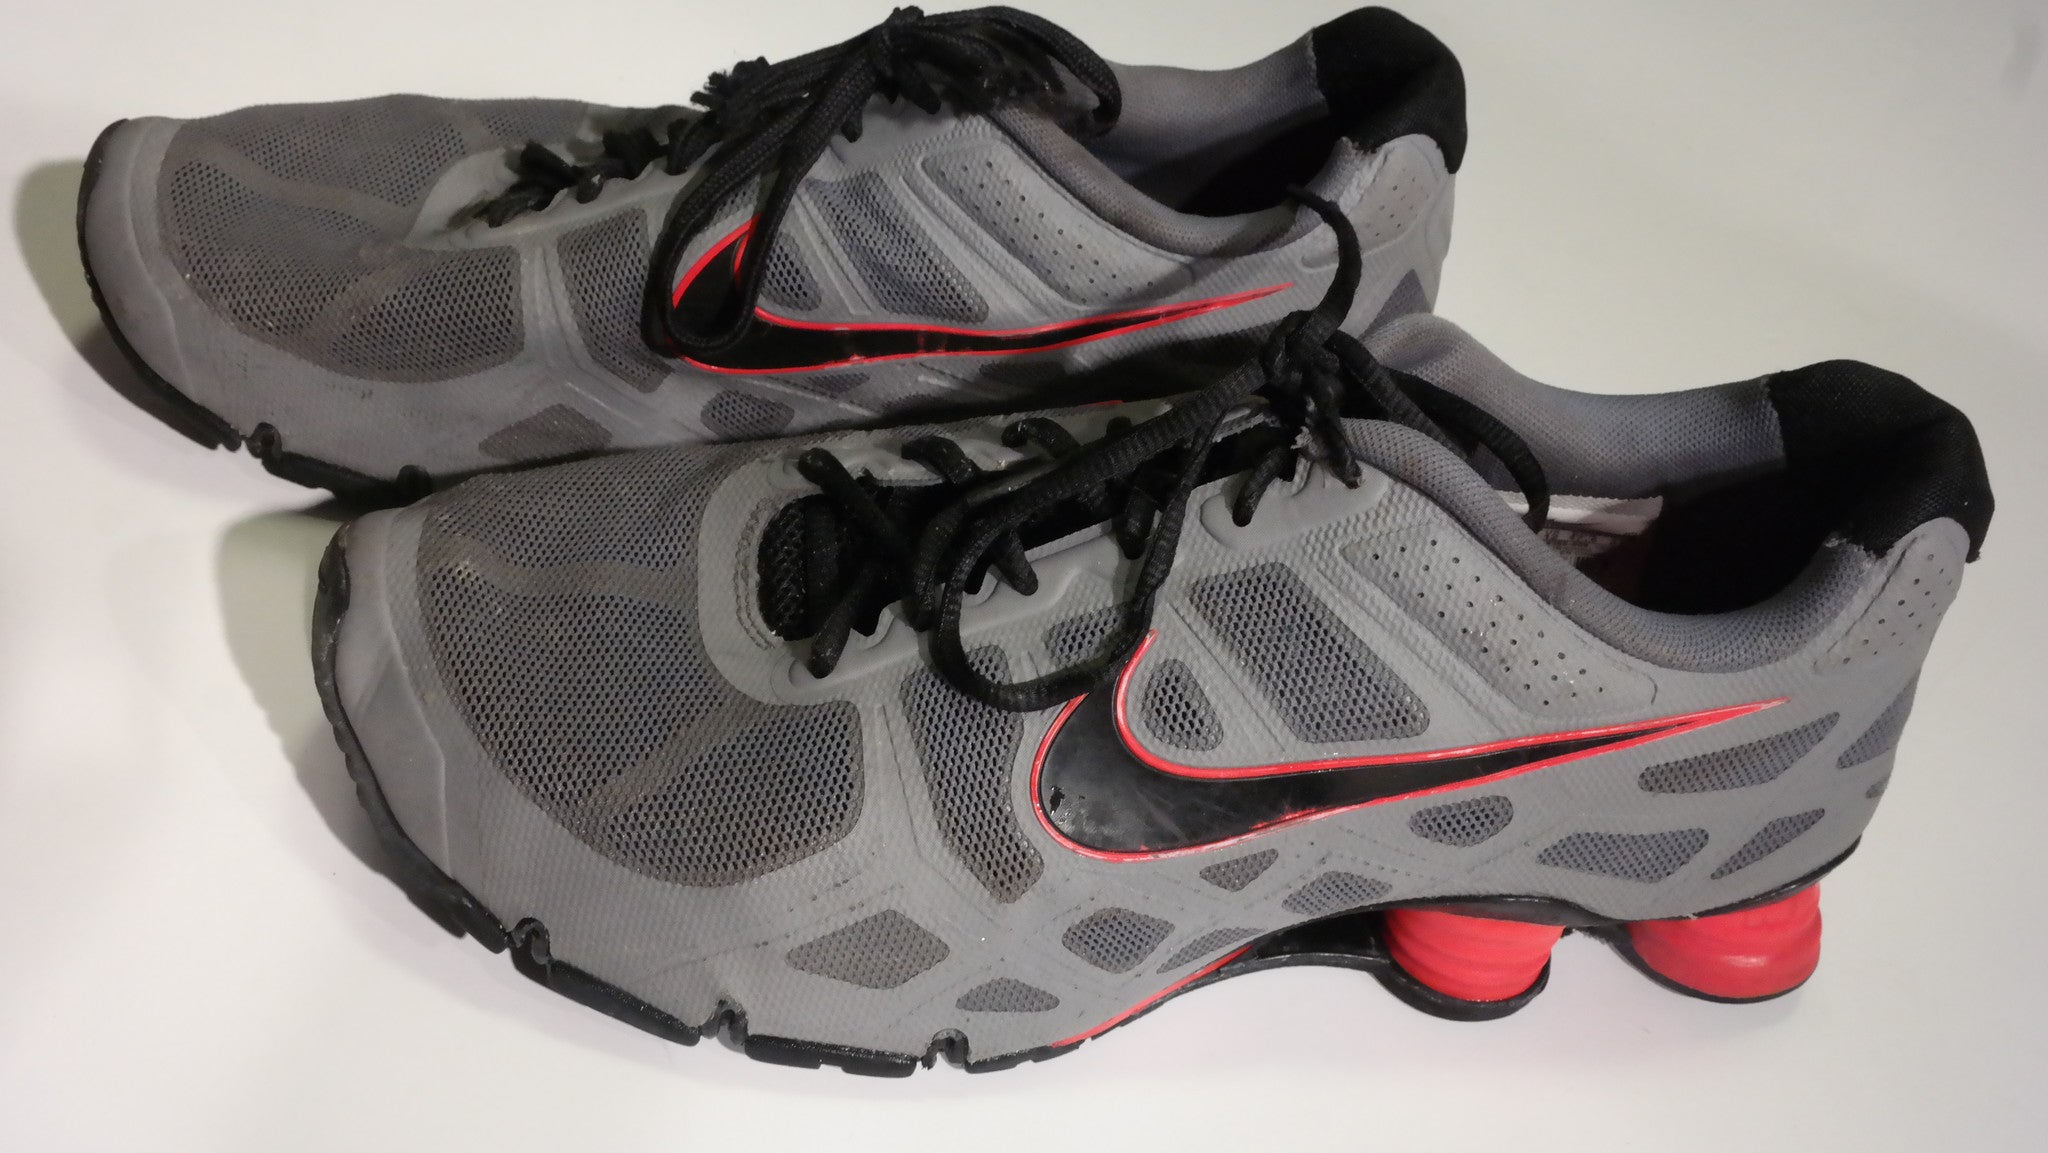 c2c4678d9306 ... Zoom Vapor Carbon Fly TD from Nike Football. nike shox turbo xii mens  shoe